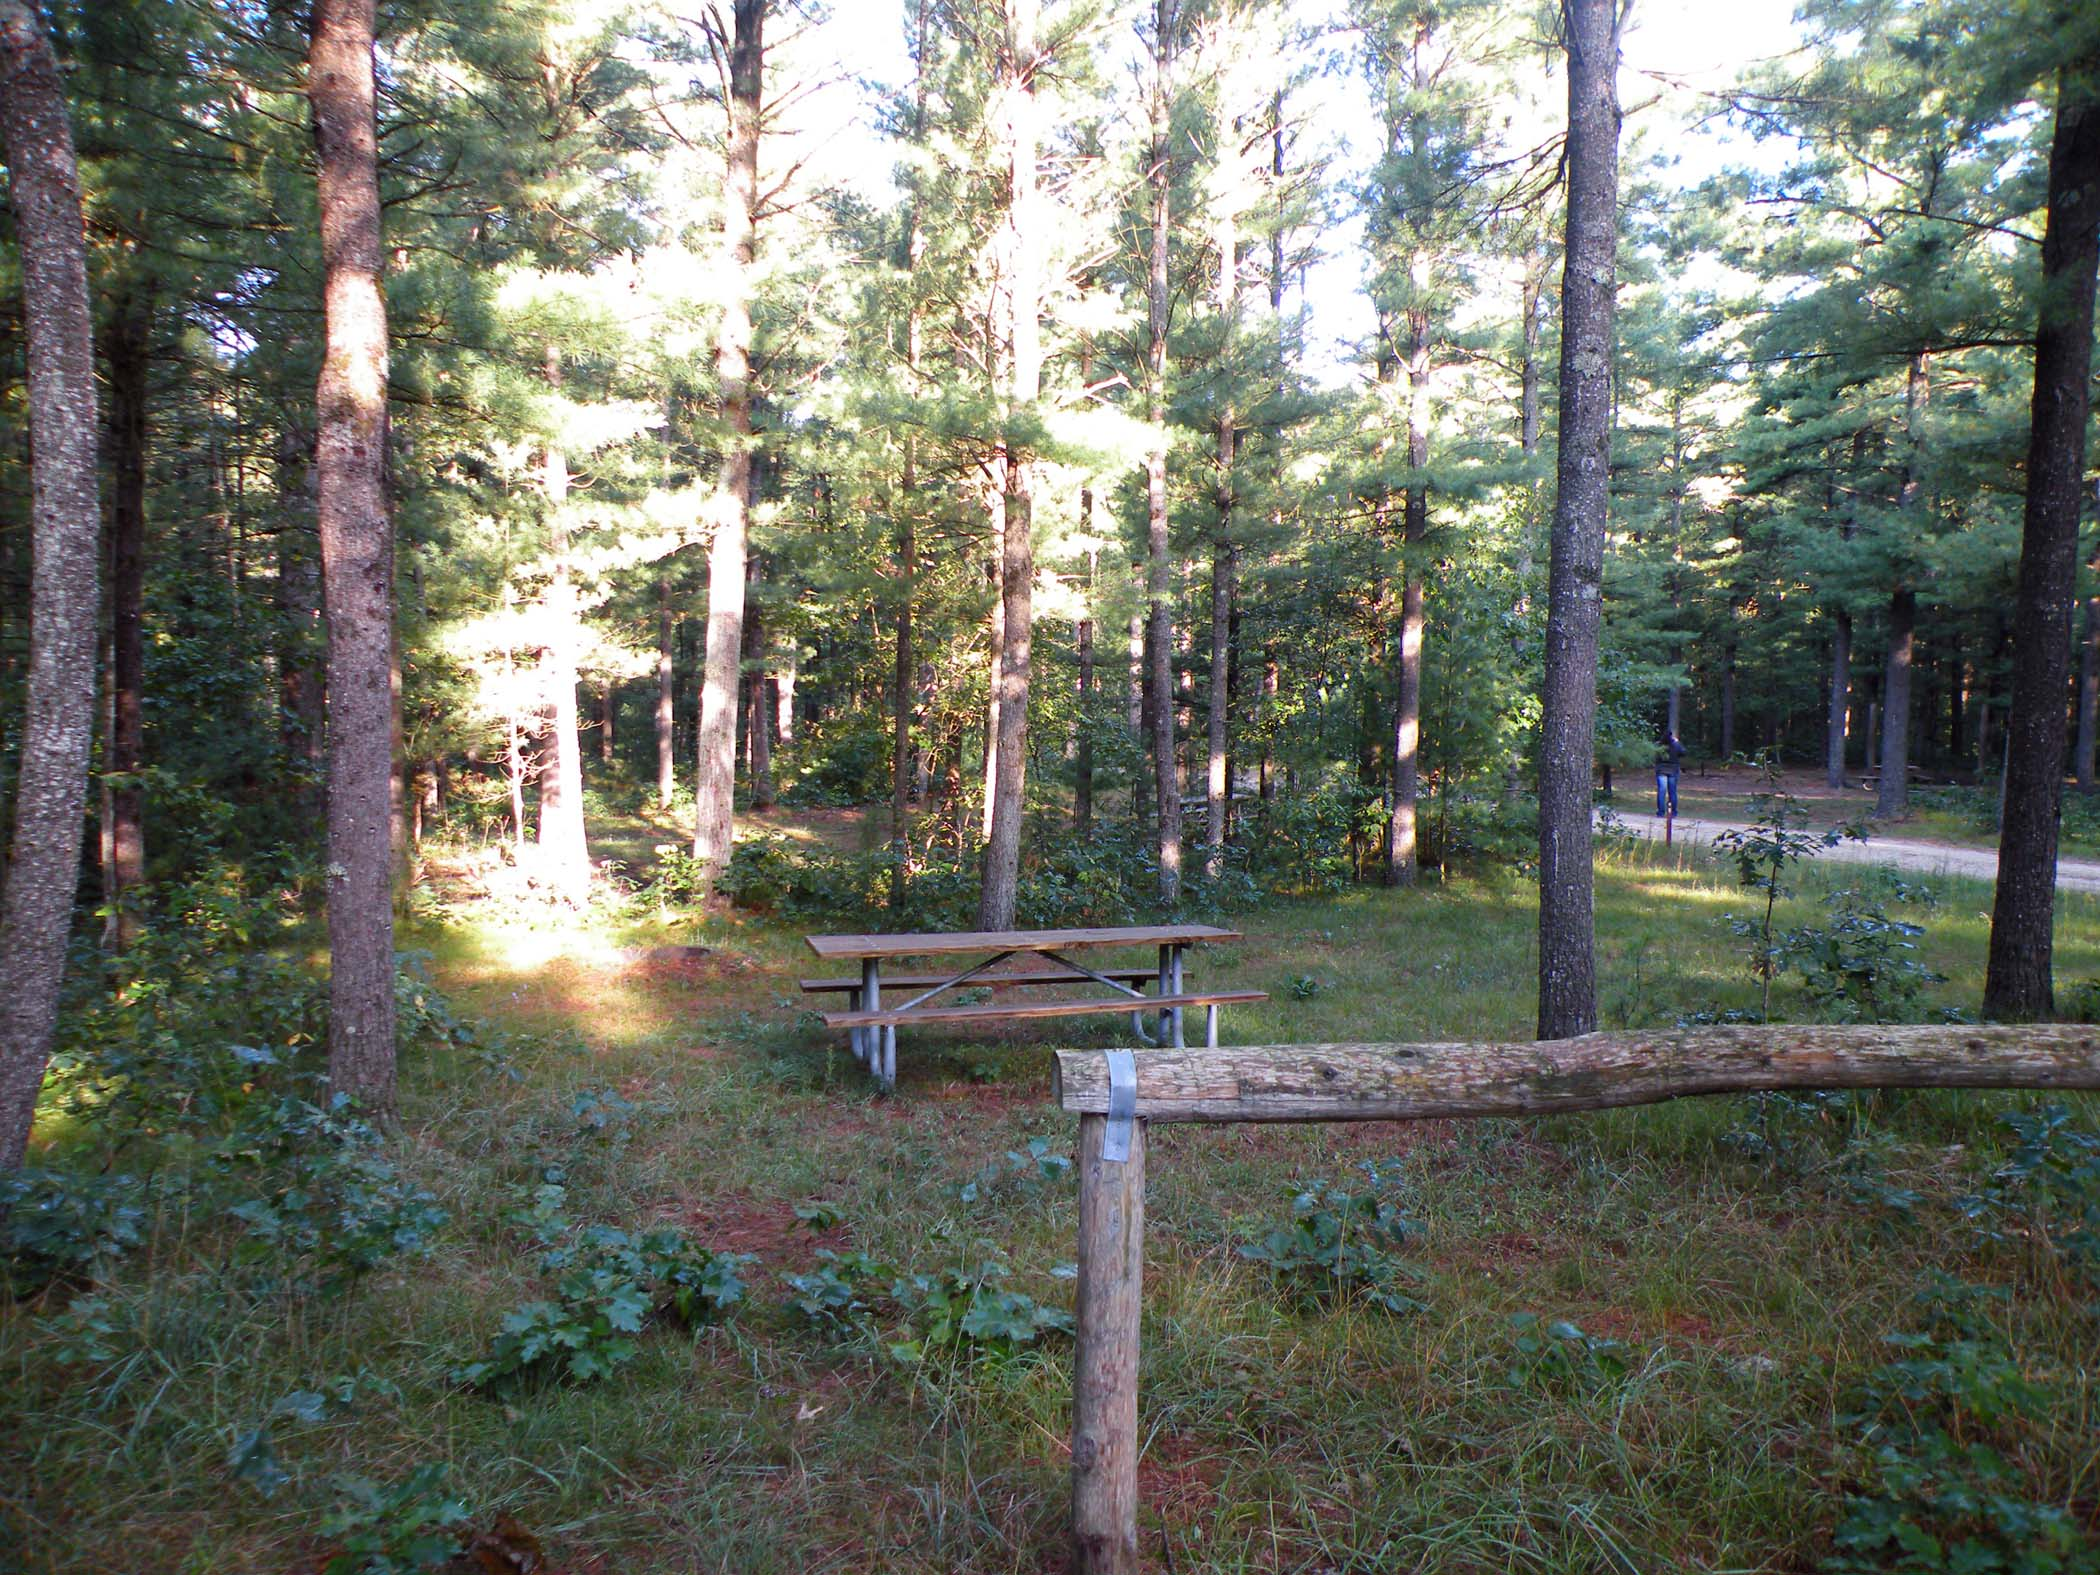 Marzinski Campground site - shows picnic table and hitching post.